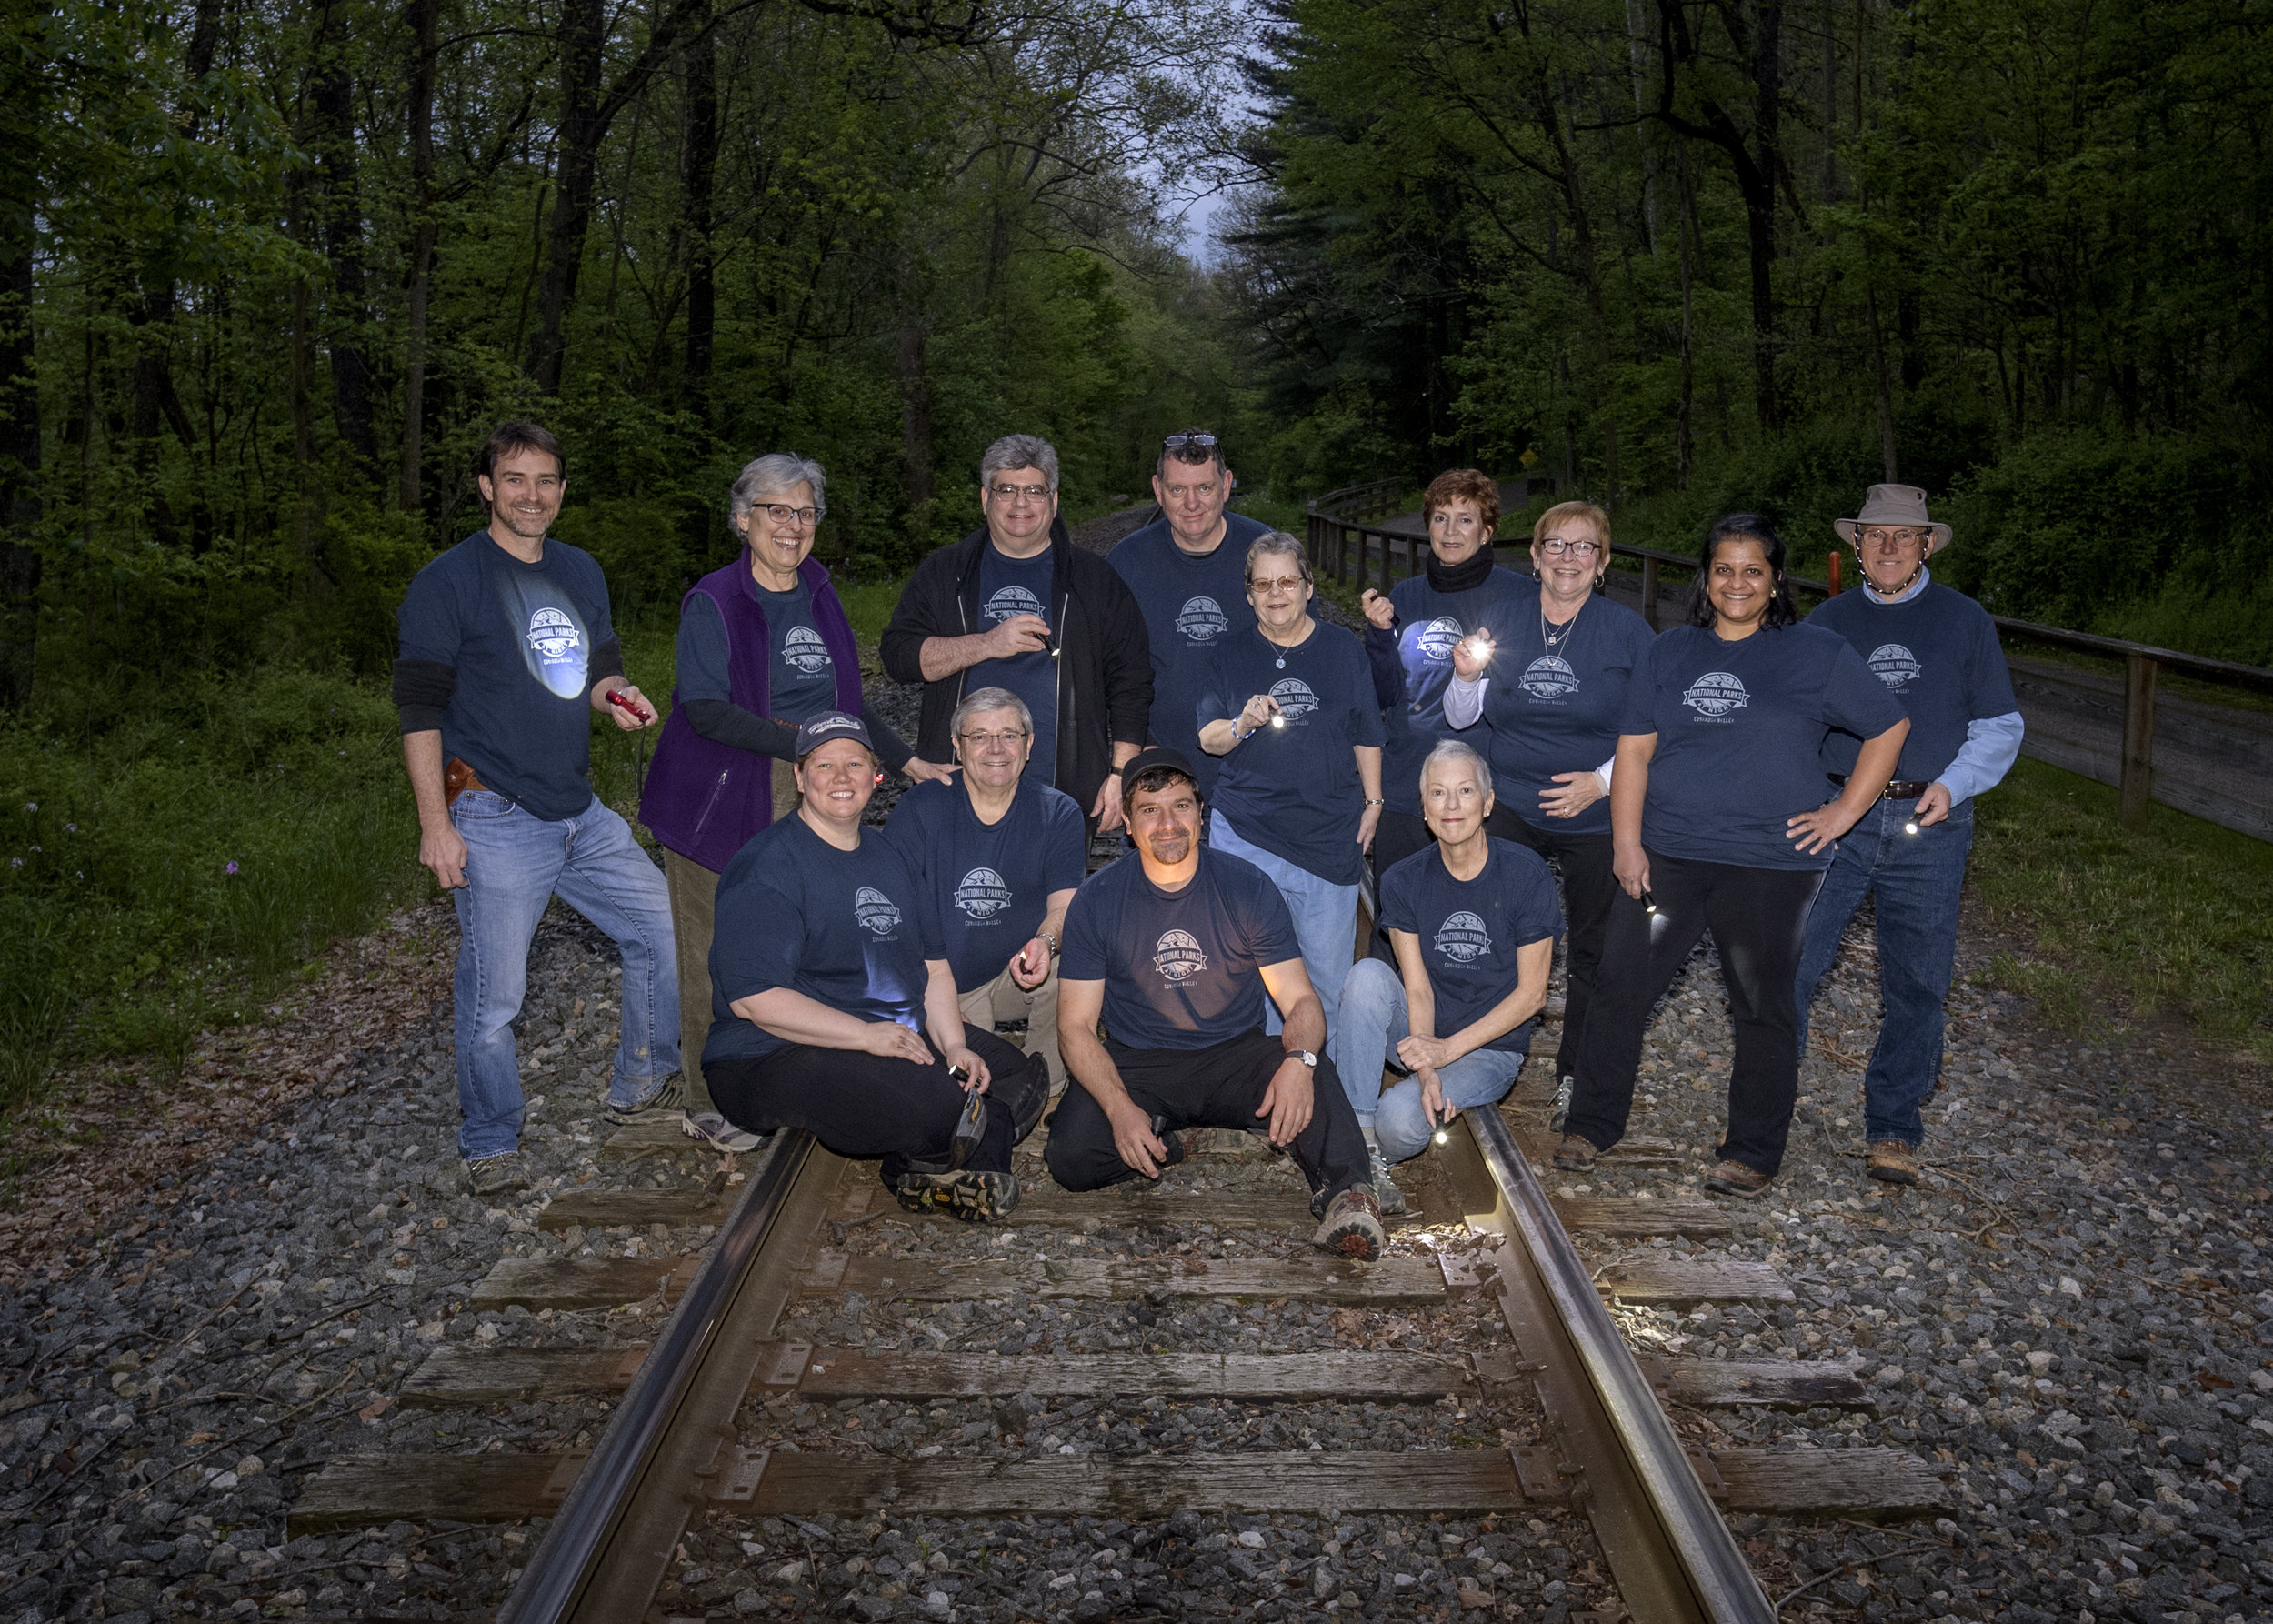 The Cuyahoga Valley National Park group